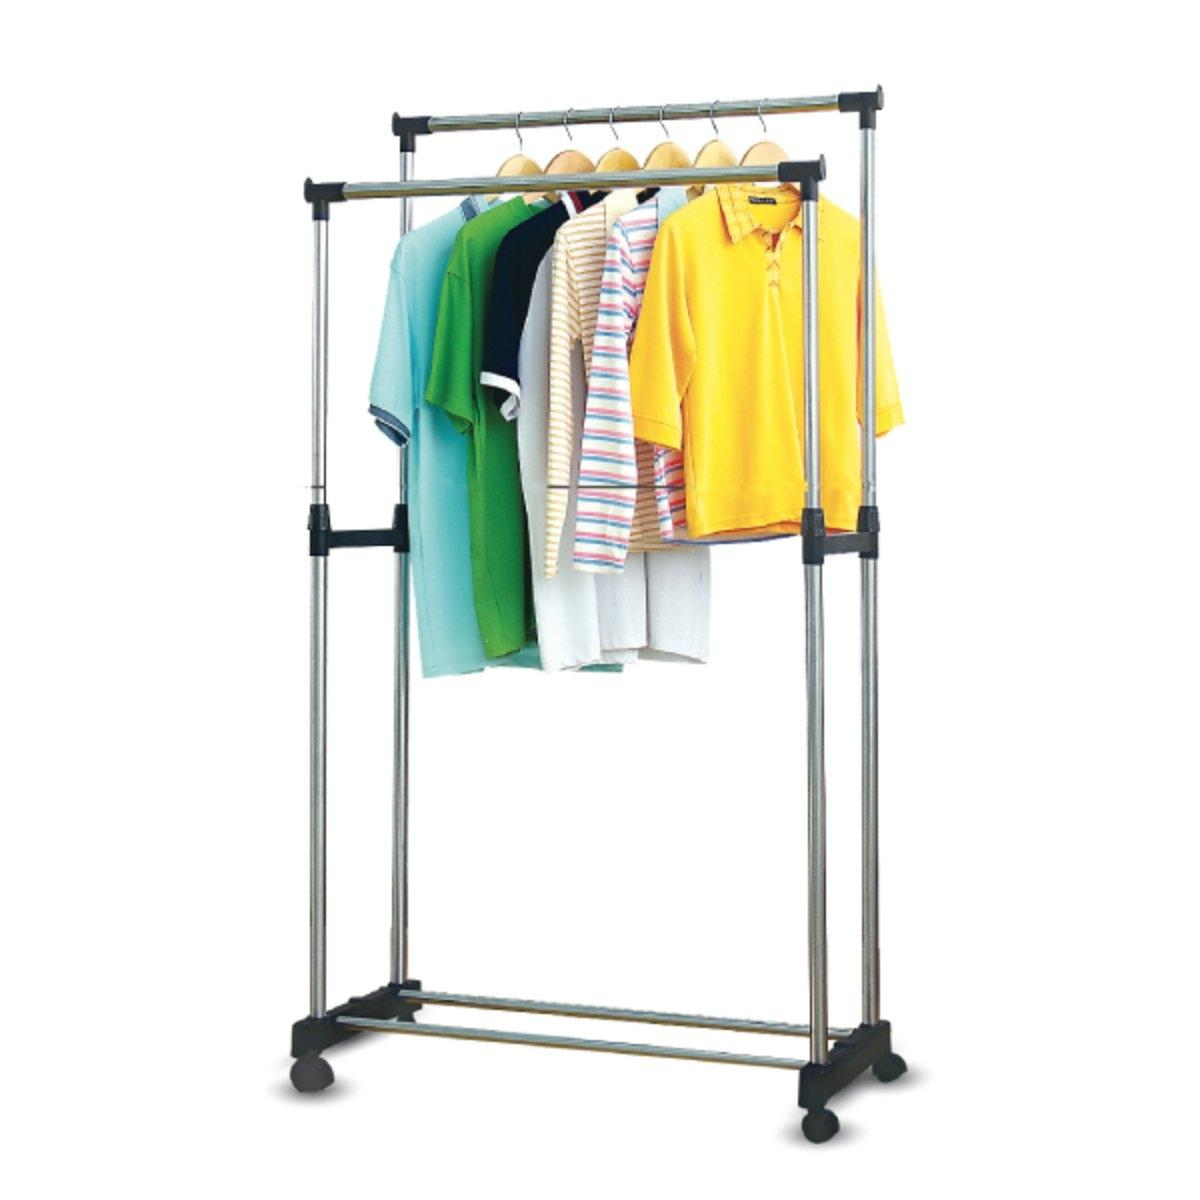 Cloth Hanger Stand Double Pole Telescopic Clothes Hanger Garment Drying Rack With Rolling Wheels Steel Floor Cloth Dryer Stand